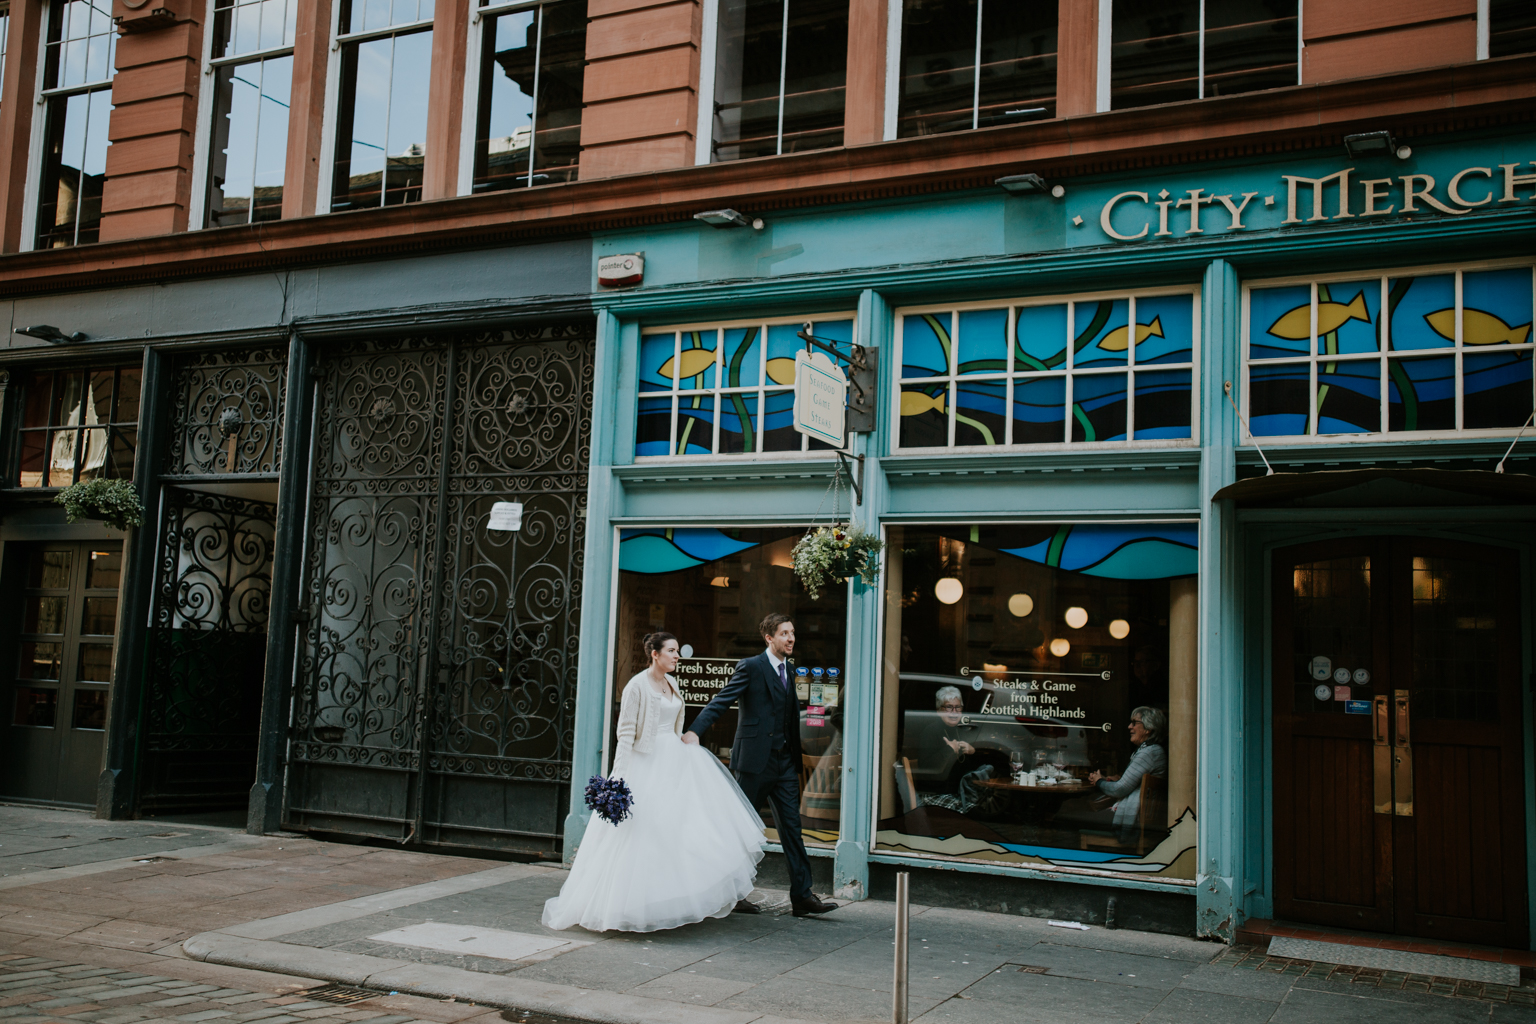 Bride and groom are walking in the Merchant city of Glasgow